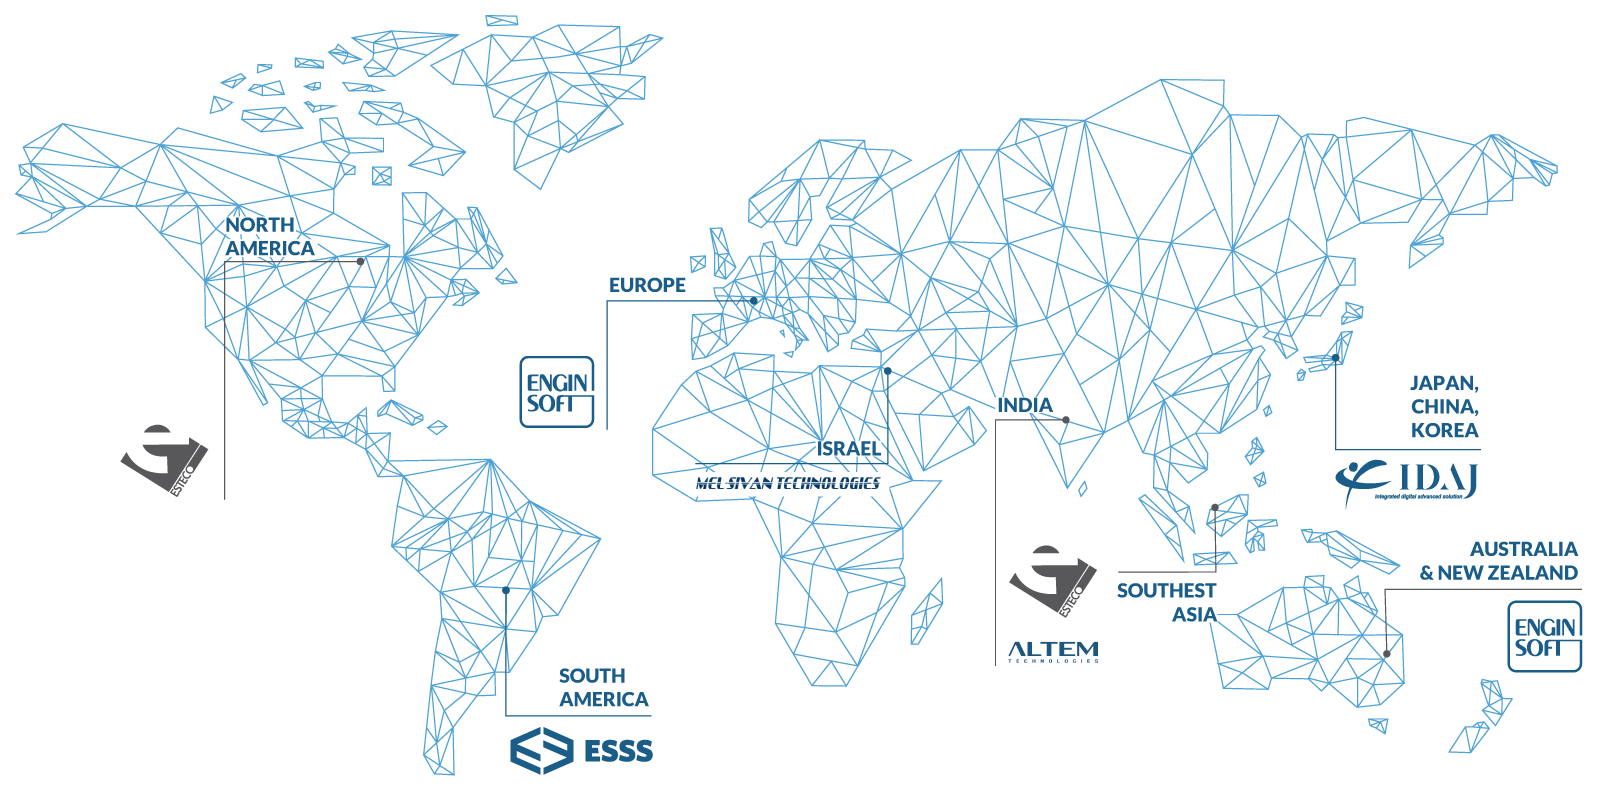 Channel Partners This Is A Very Typical Network Diagram In Shanghai I Was Using Estecos Technology Distributed Throughout The World By Qualified Of Who Provide Proficient Local Service And Support To Our